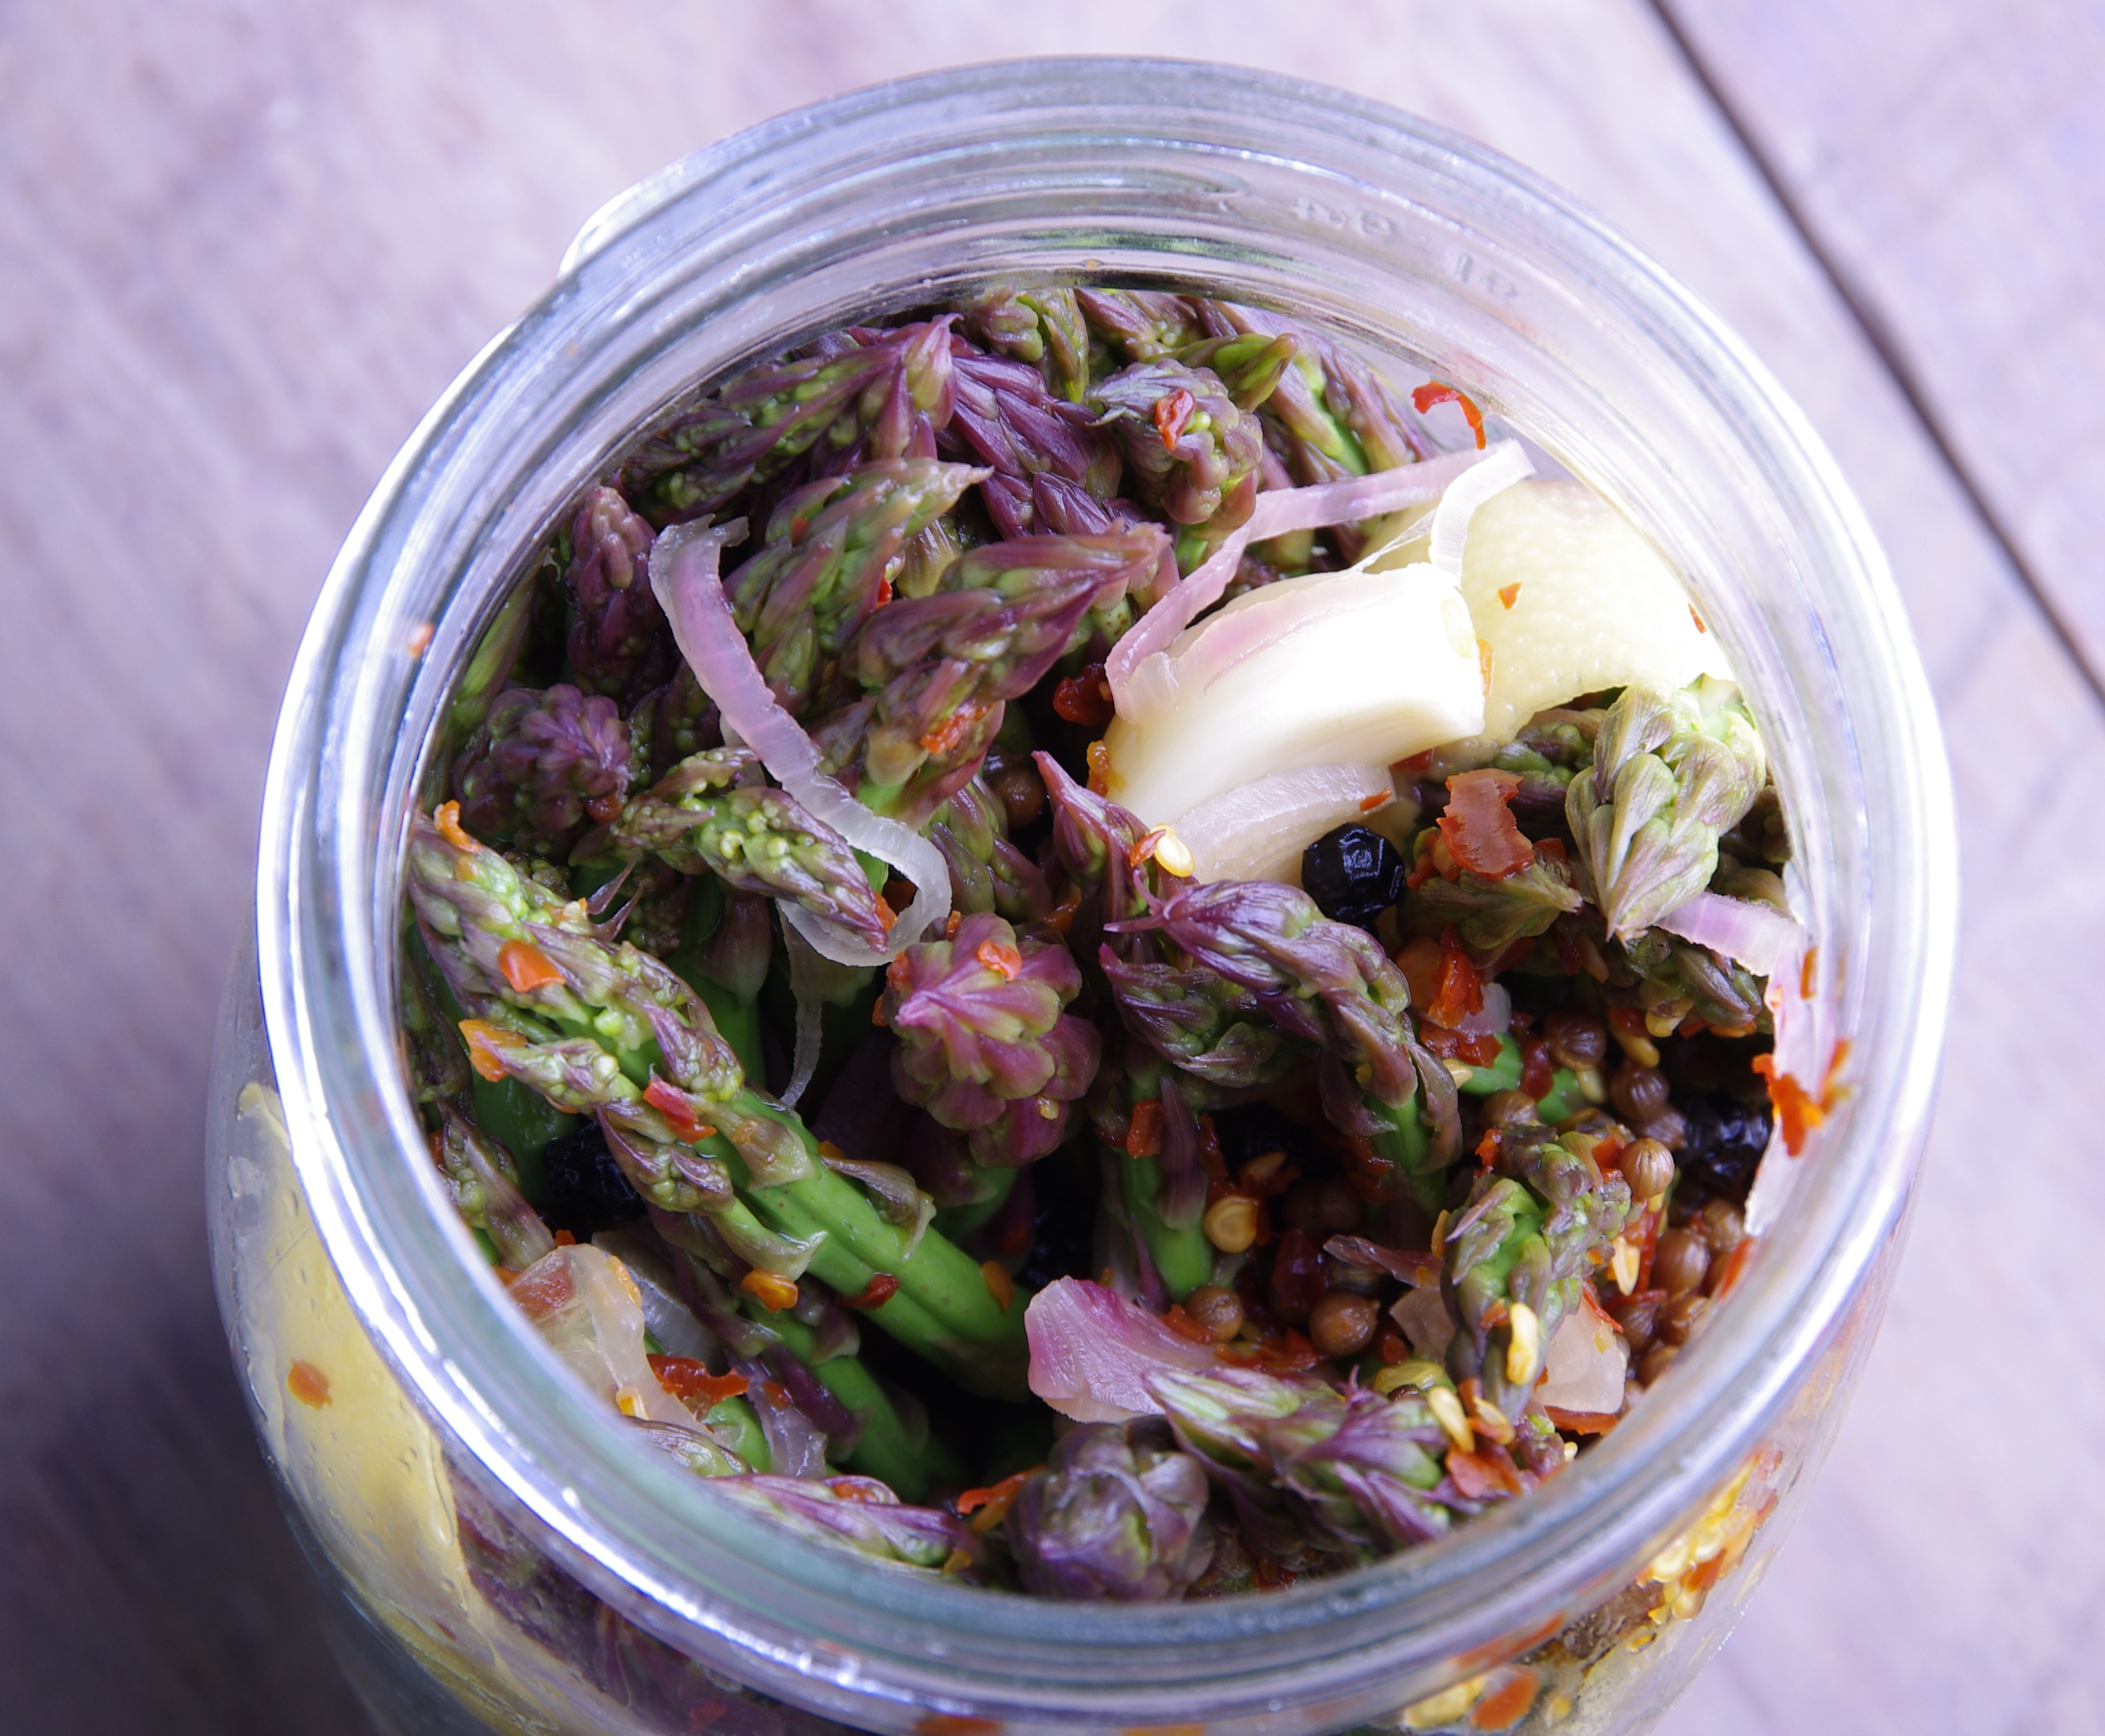 Lemon-Chile Pickled Asparagus